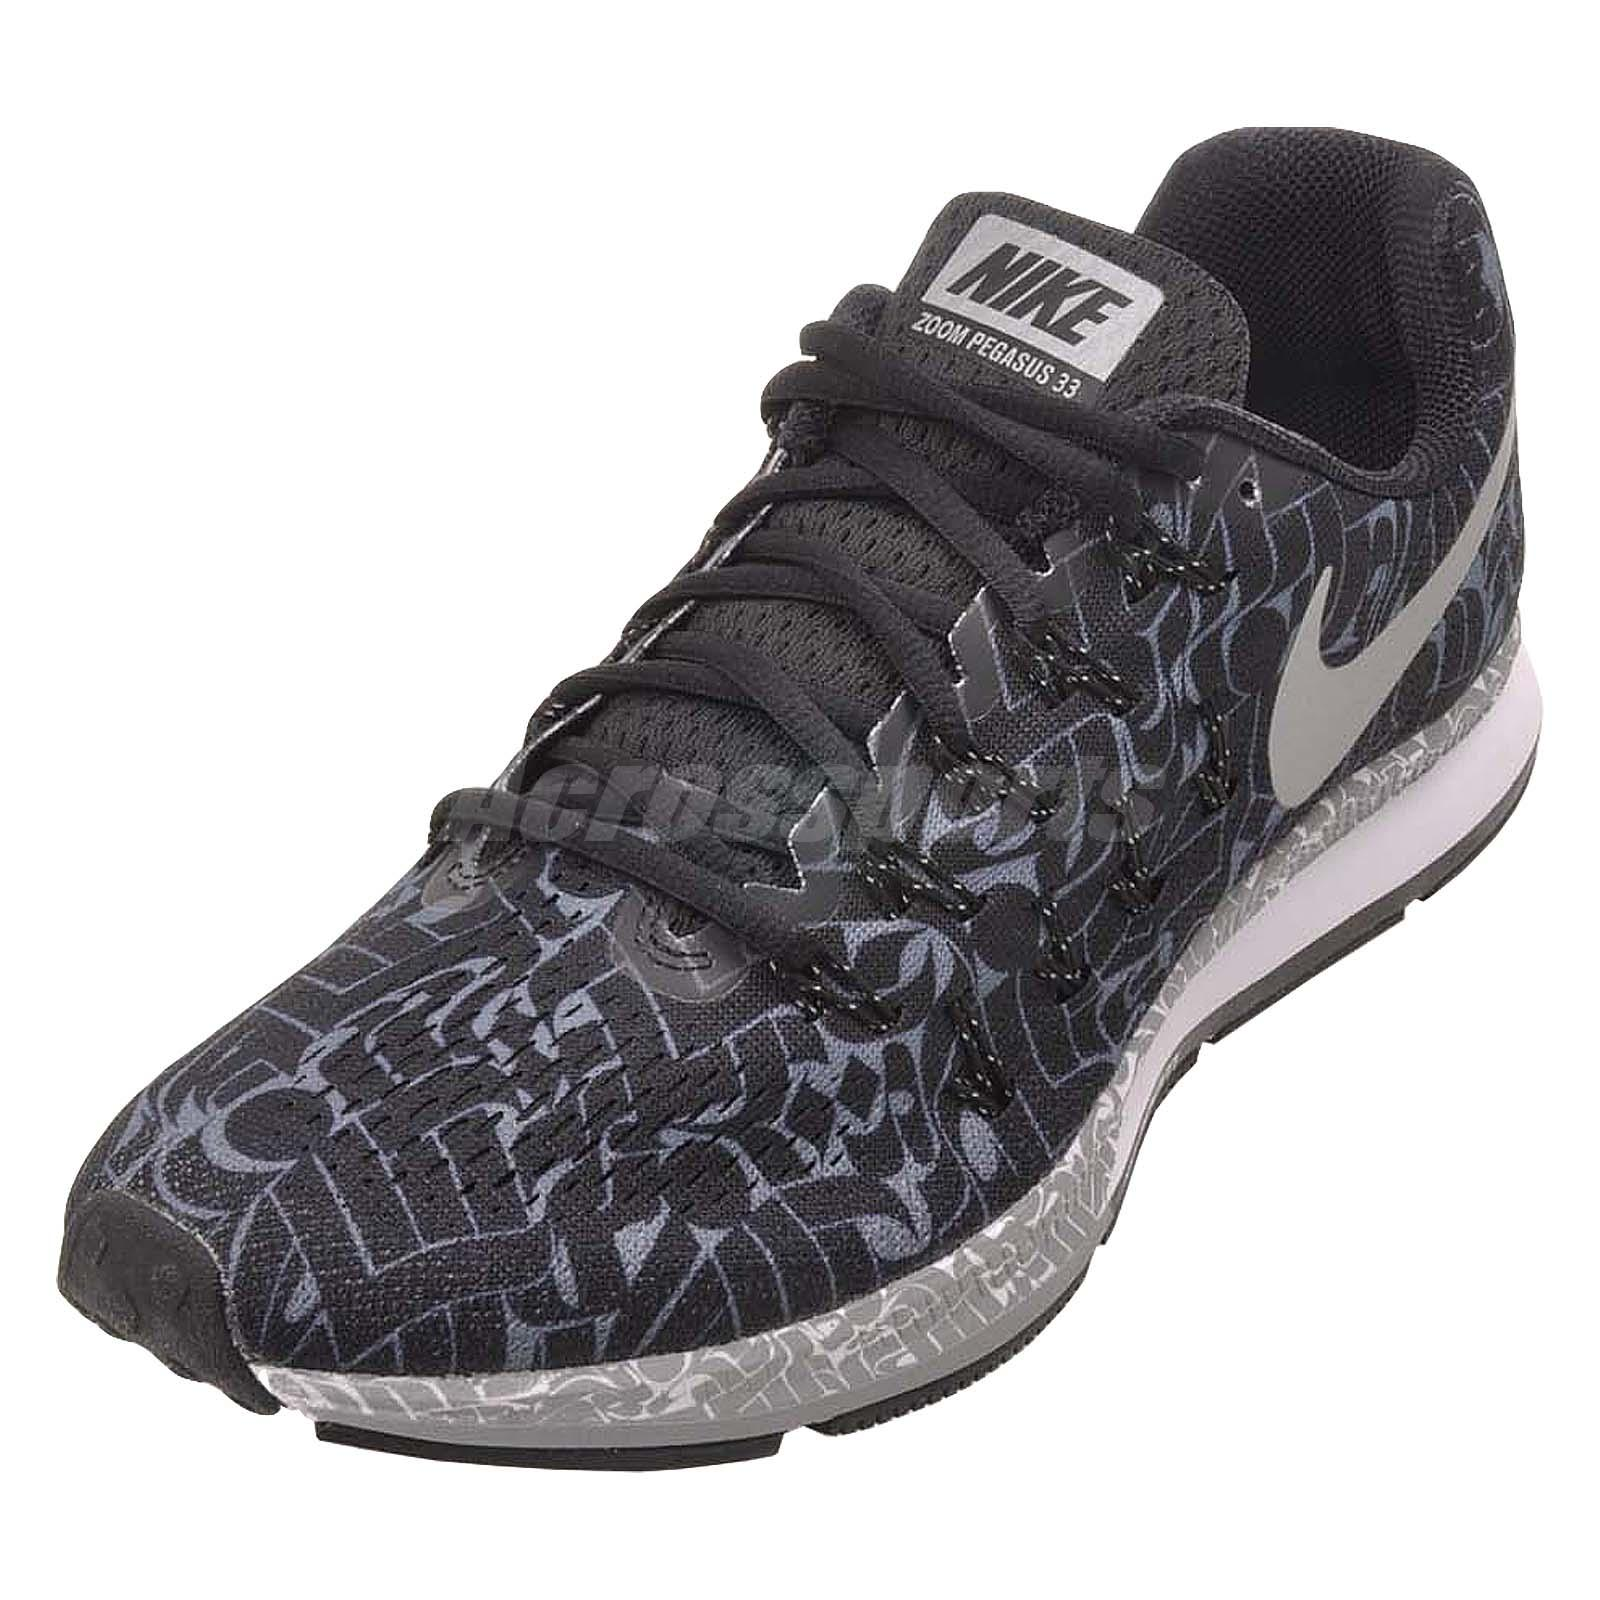 576e21fe094 ... promo code for made in china d3b7f f2e86 promo code for made in china  d3b7f f2e86  coupon code for nike womens air zoom pegasus 33 ...